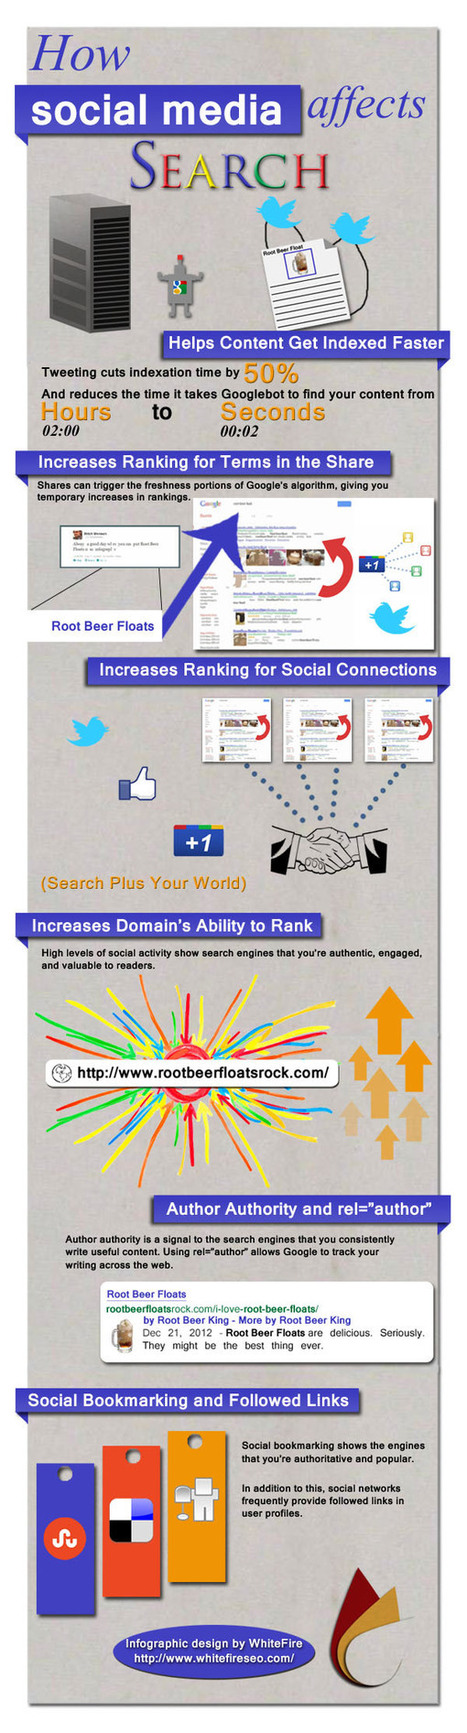 How Social Media Impacts SEO and Site Ranking: infographic | Guerrilla Social Media | Scoop.it